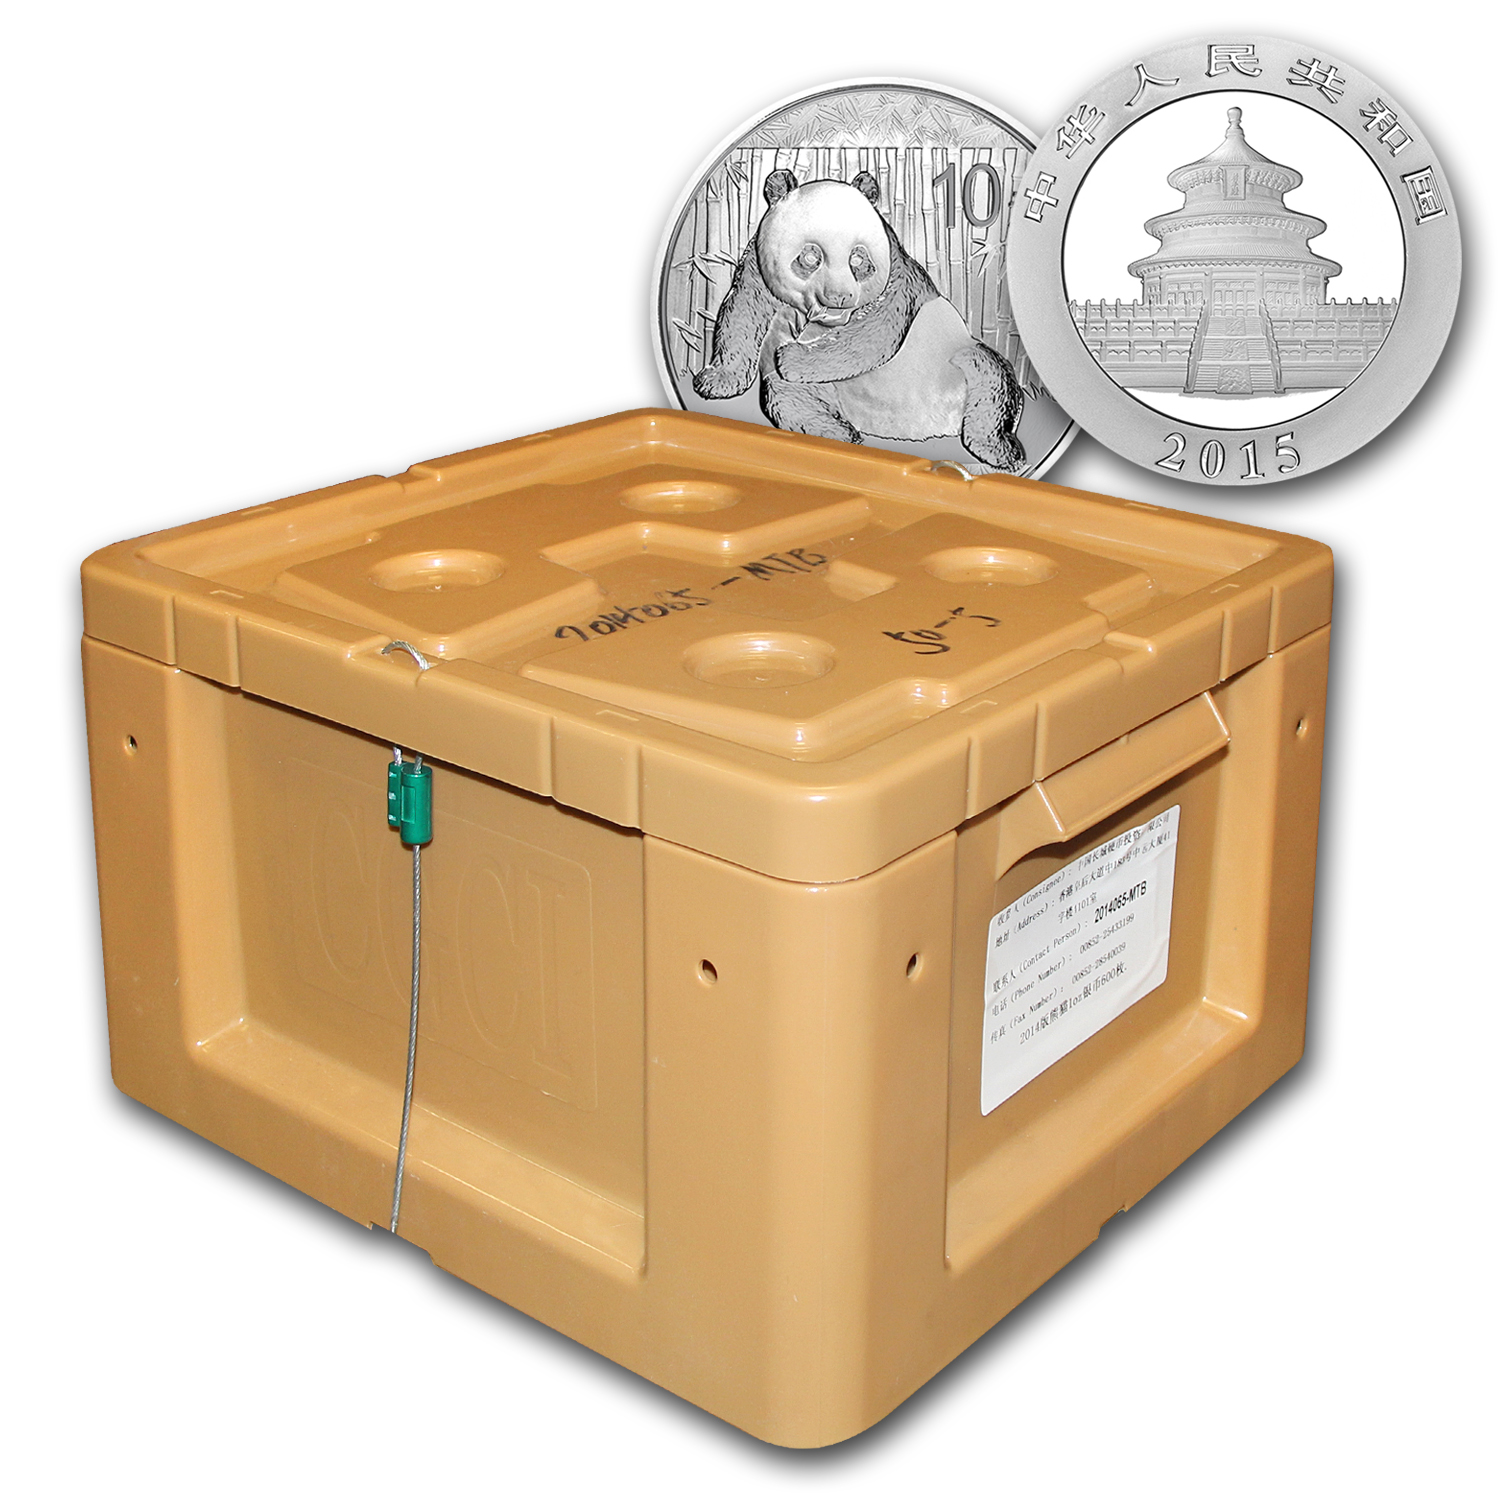 2015 China 600-Coin 1 oz Silver Panda (Sealed Box)